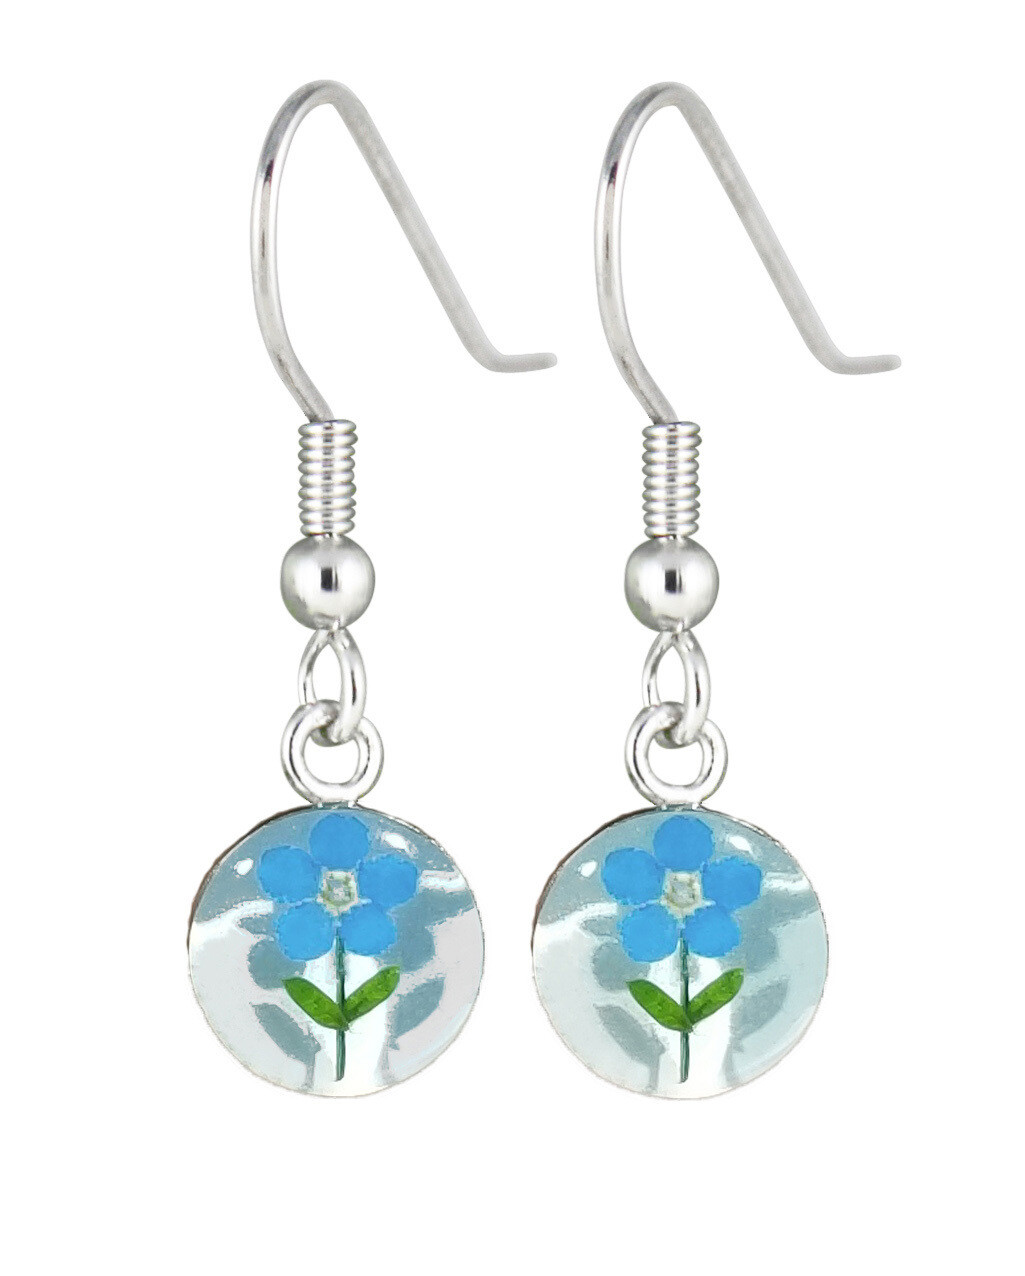 Real Forget-Me-Not Small, Circle Earrings, White Background